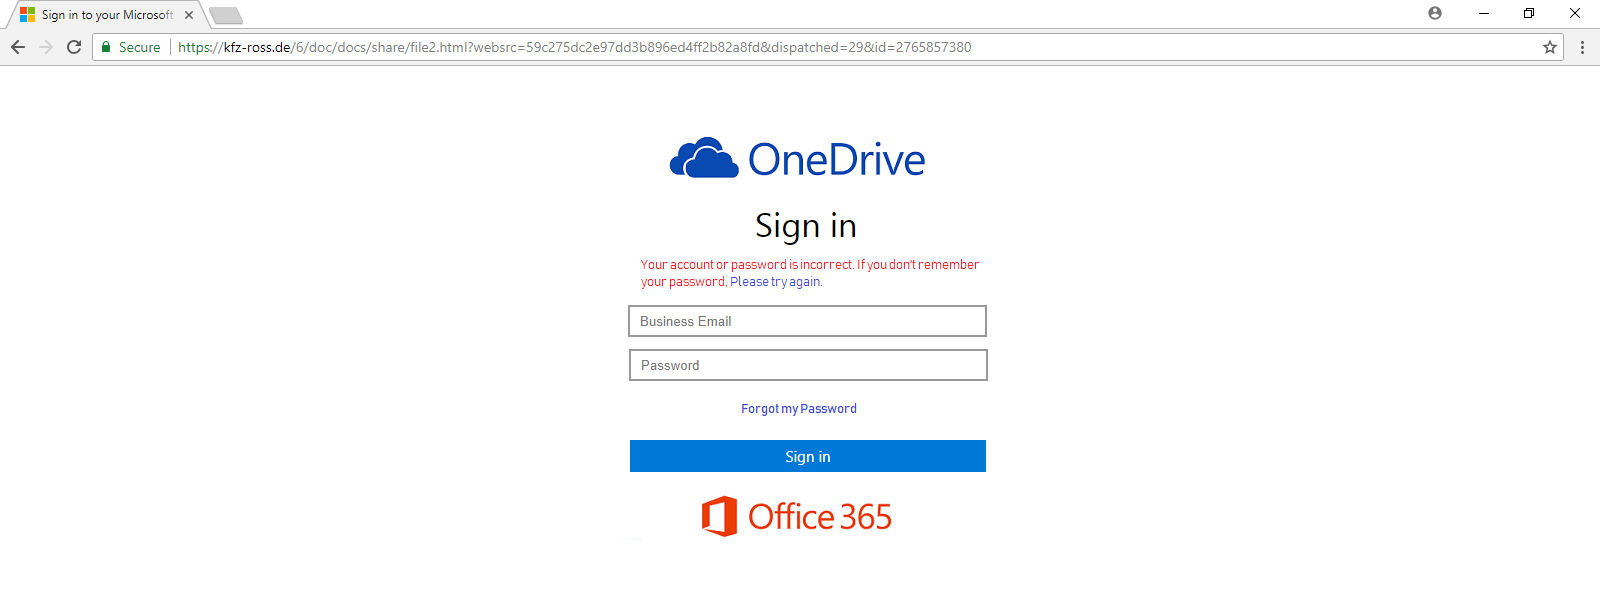 OneDrive Bait Login  - One Drive Bait - Phishing Trap for Microsoft Users | Phishing Attacks